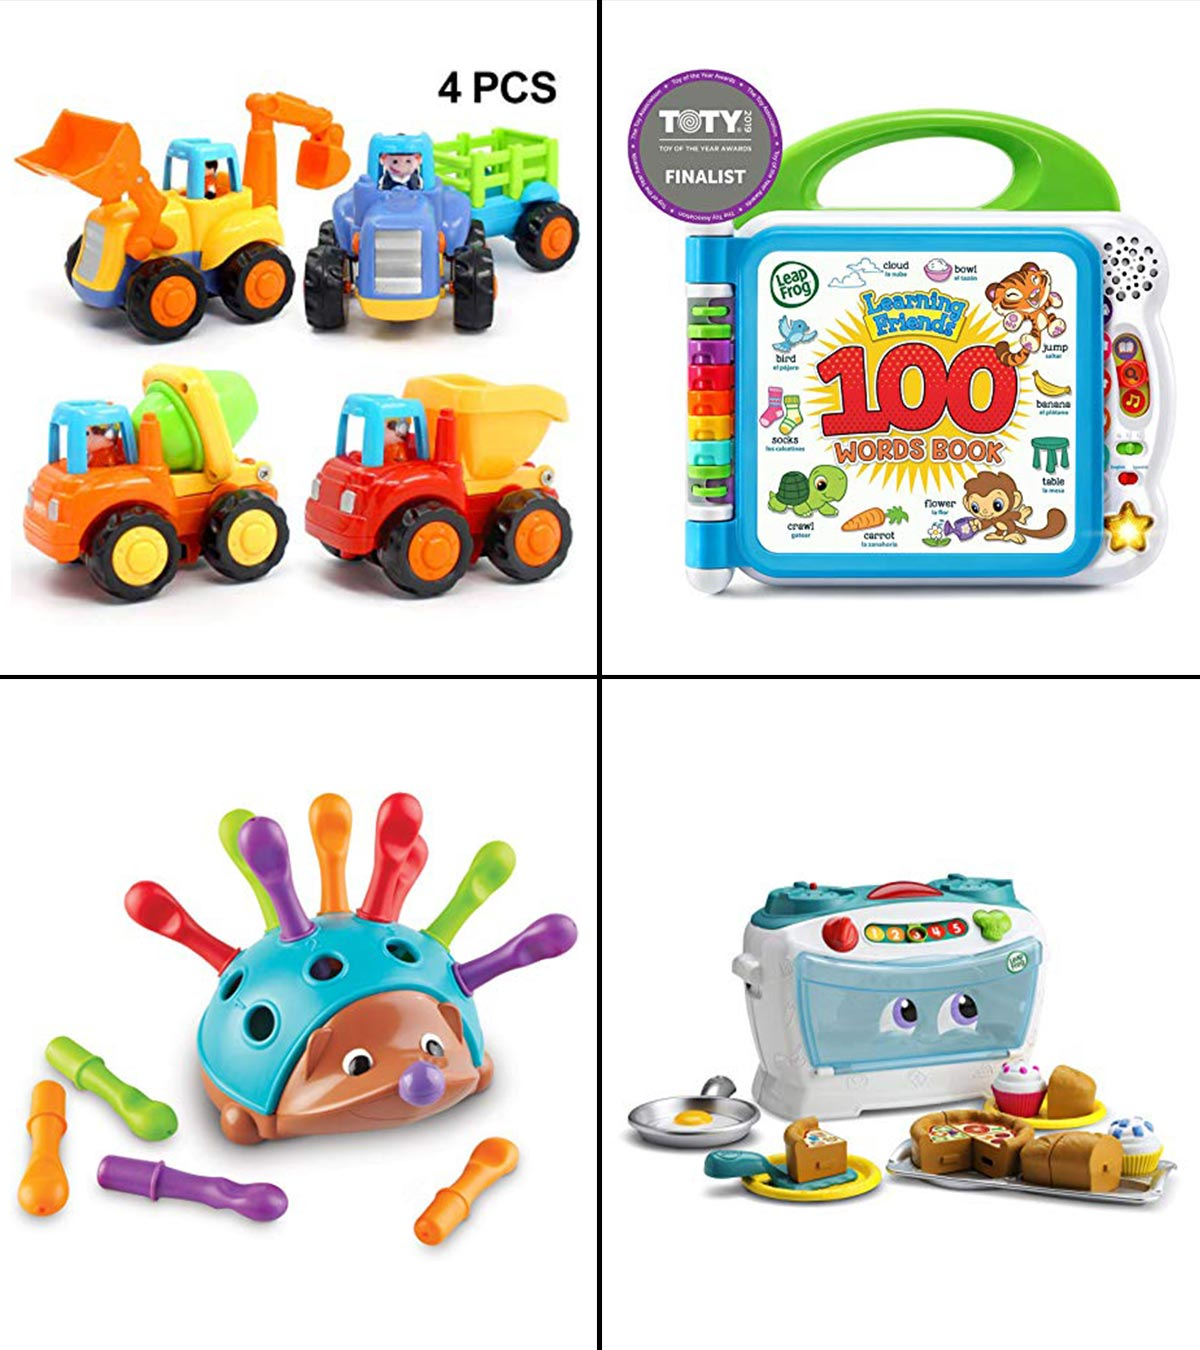 23 Best Educational Toys For Toddlers To Buy In 2020